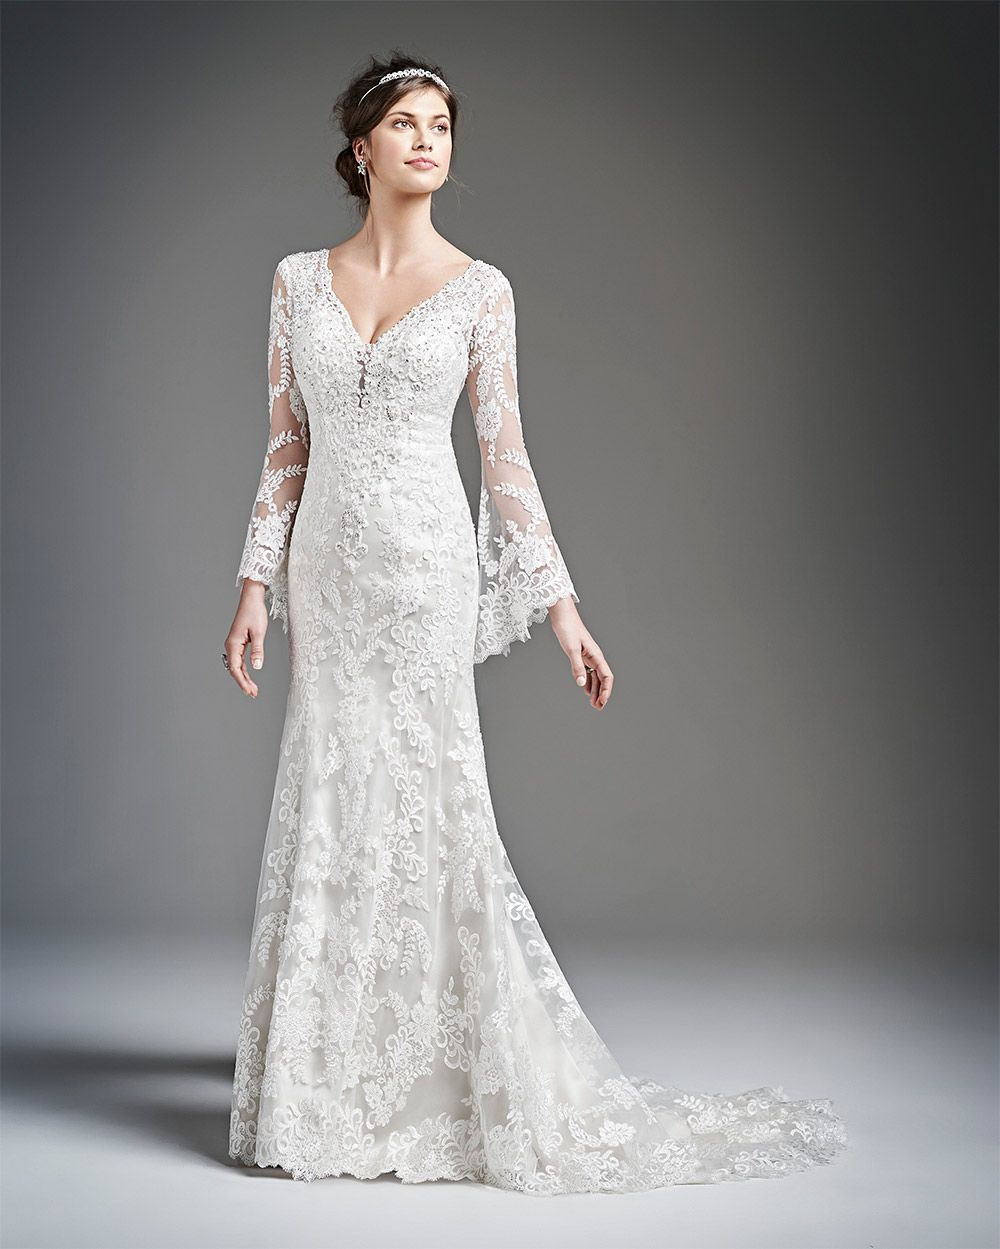 Wedding Dresses For Older Brides: 21 Beautiful Designs